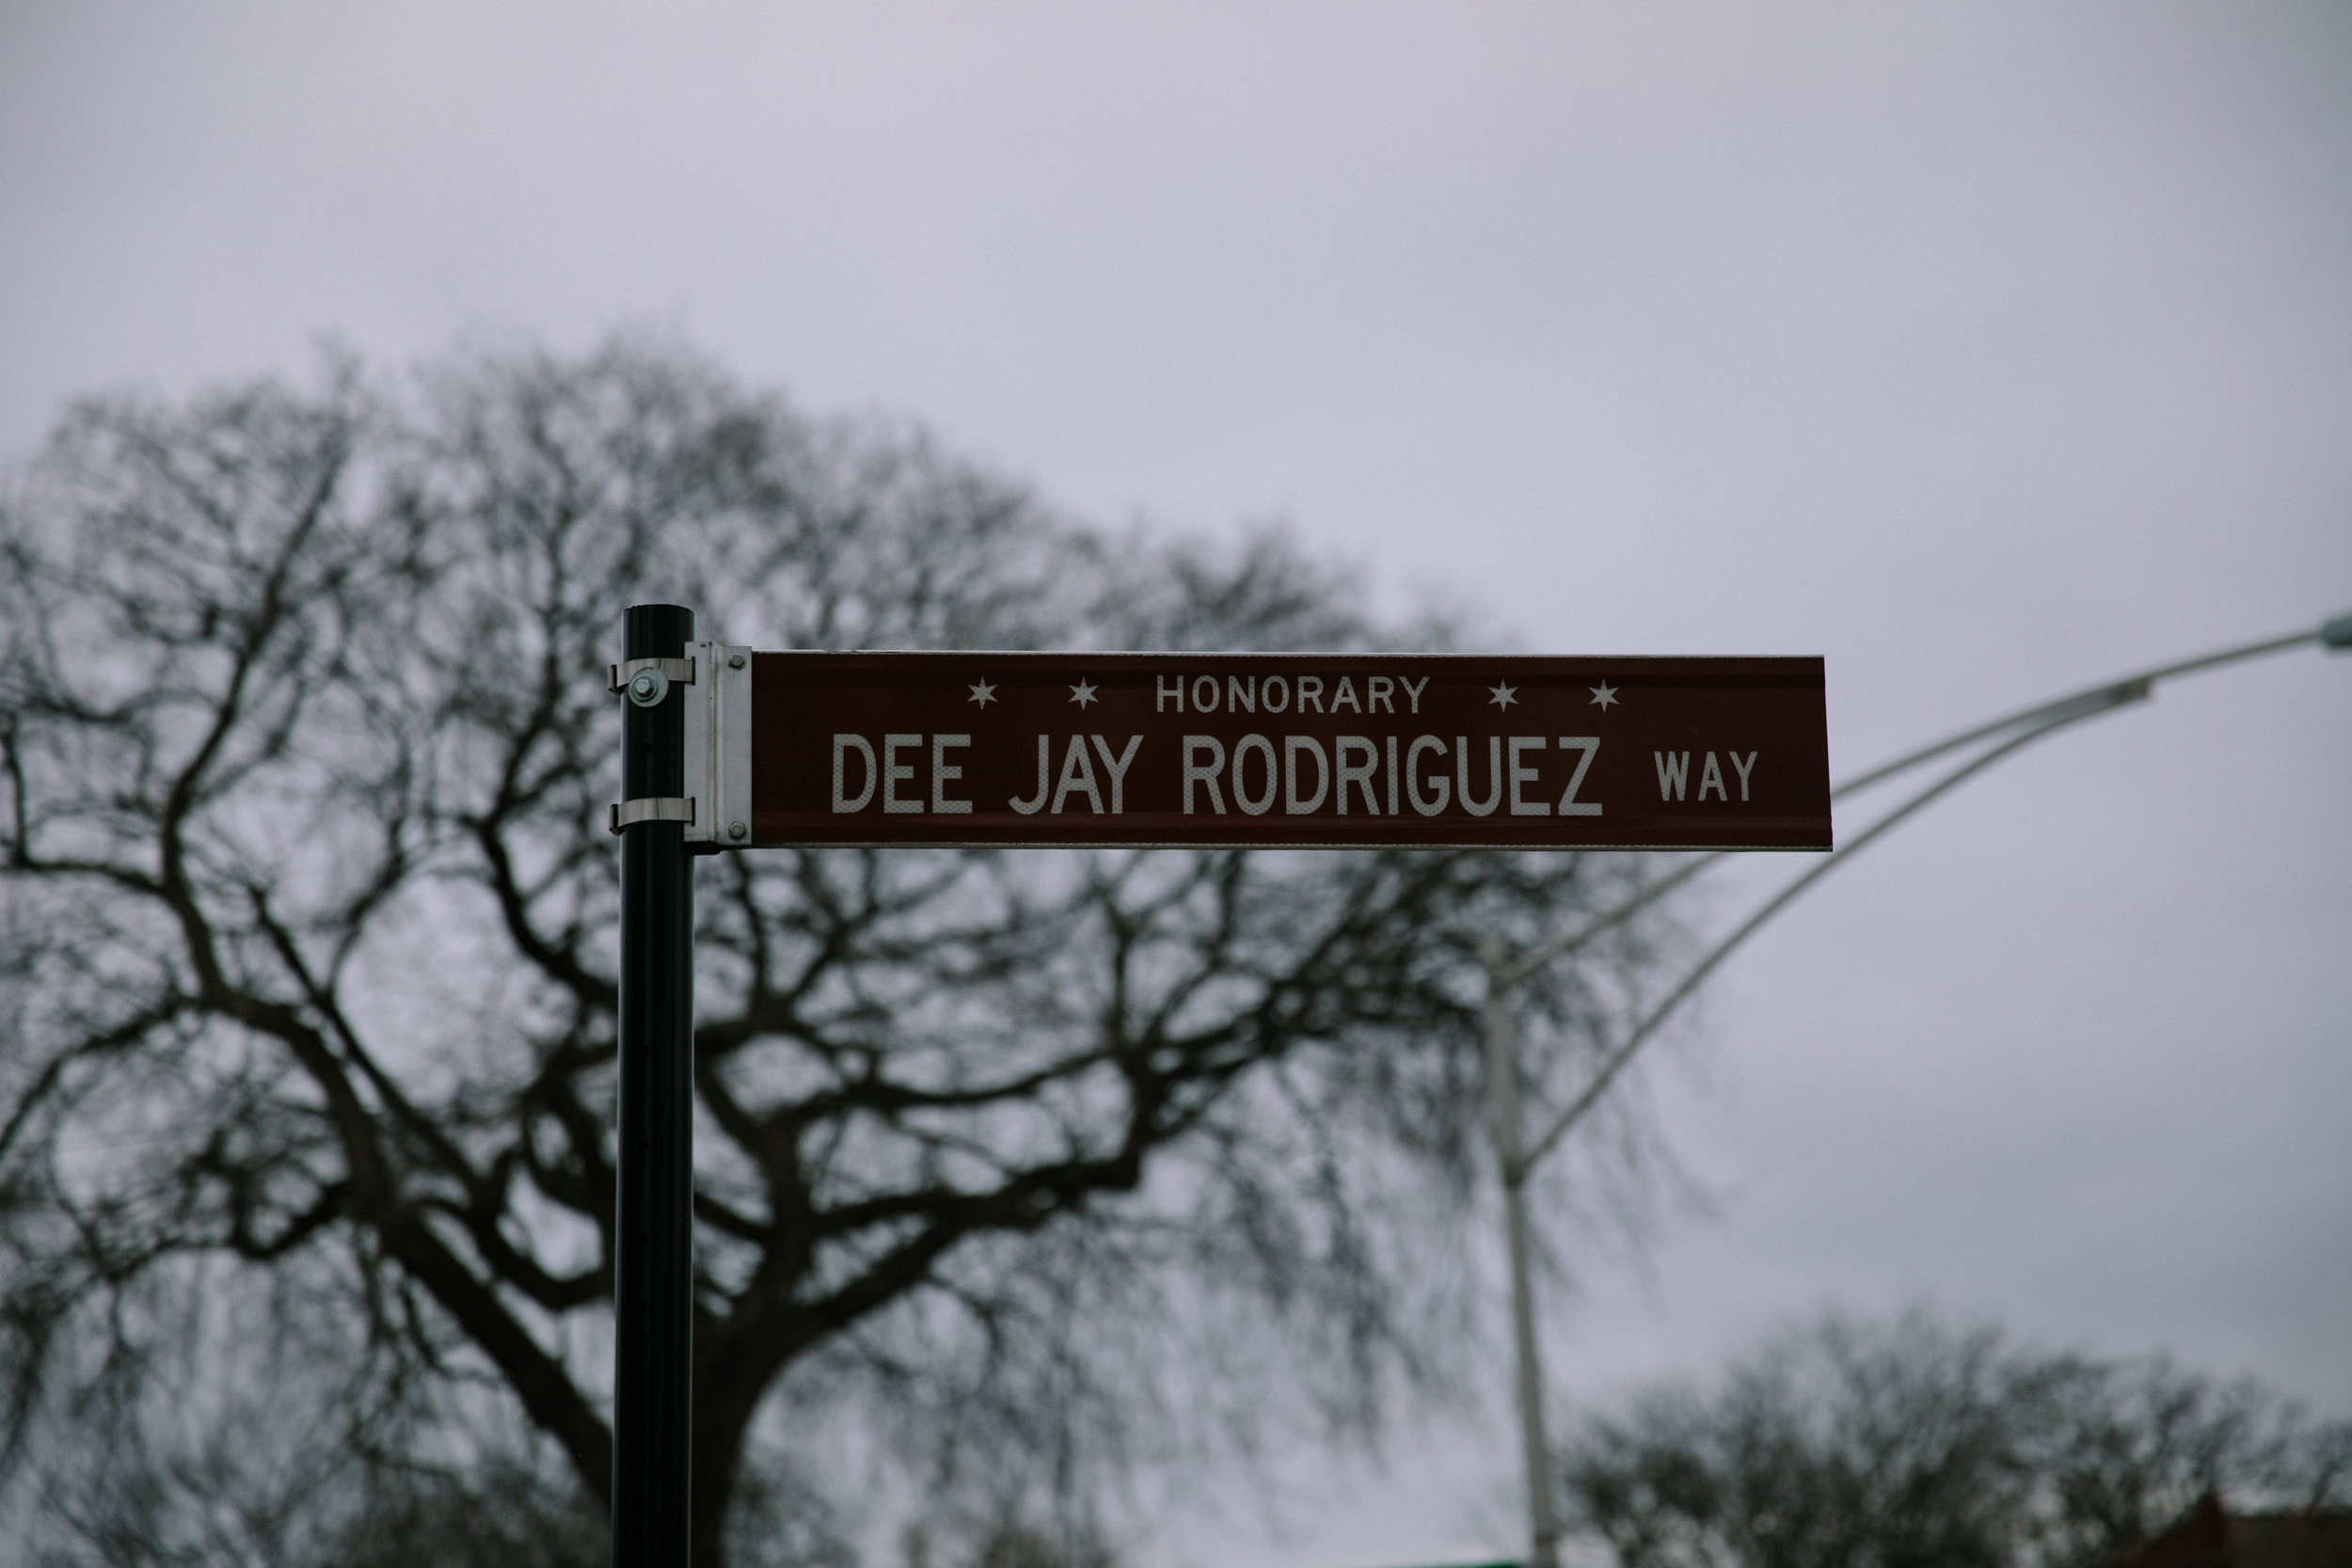 Dee Jay Rodriguez Way borders Blackhawk Park in Chicago's Belmont-Cragin neighborhood. Dee Jay was shot and killed in 2011 at the young age of 23. In the aftermath of his death, Dee Jay's mother, Elizabeth Ramirez, co-founded Parents for Peace and Justice, a support and advocacy organization for parents who have lost children to gun violence in Chicago. MCC partners with Parents for Peace and justice to help support their important work.